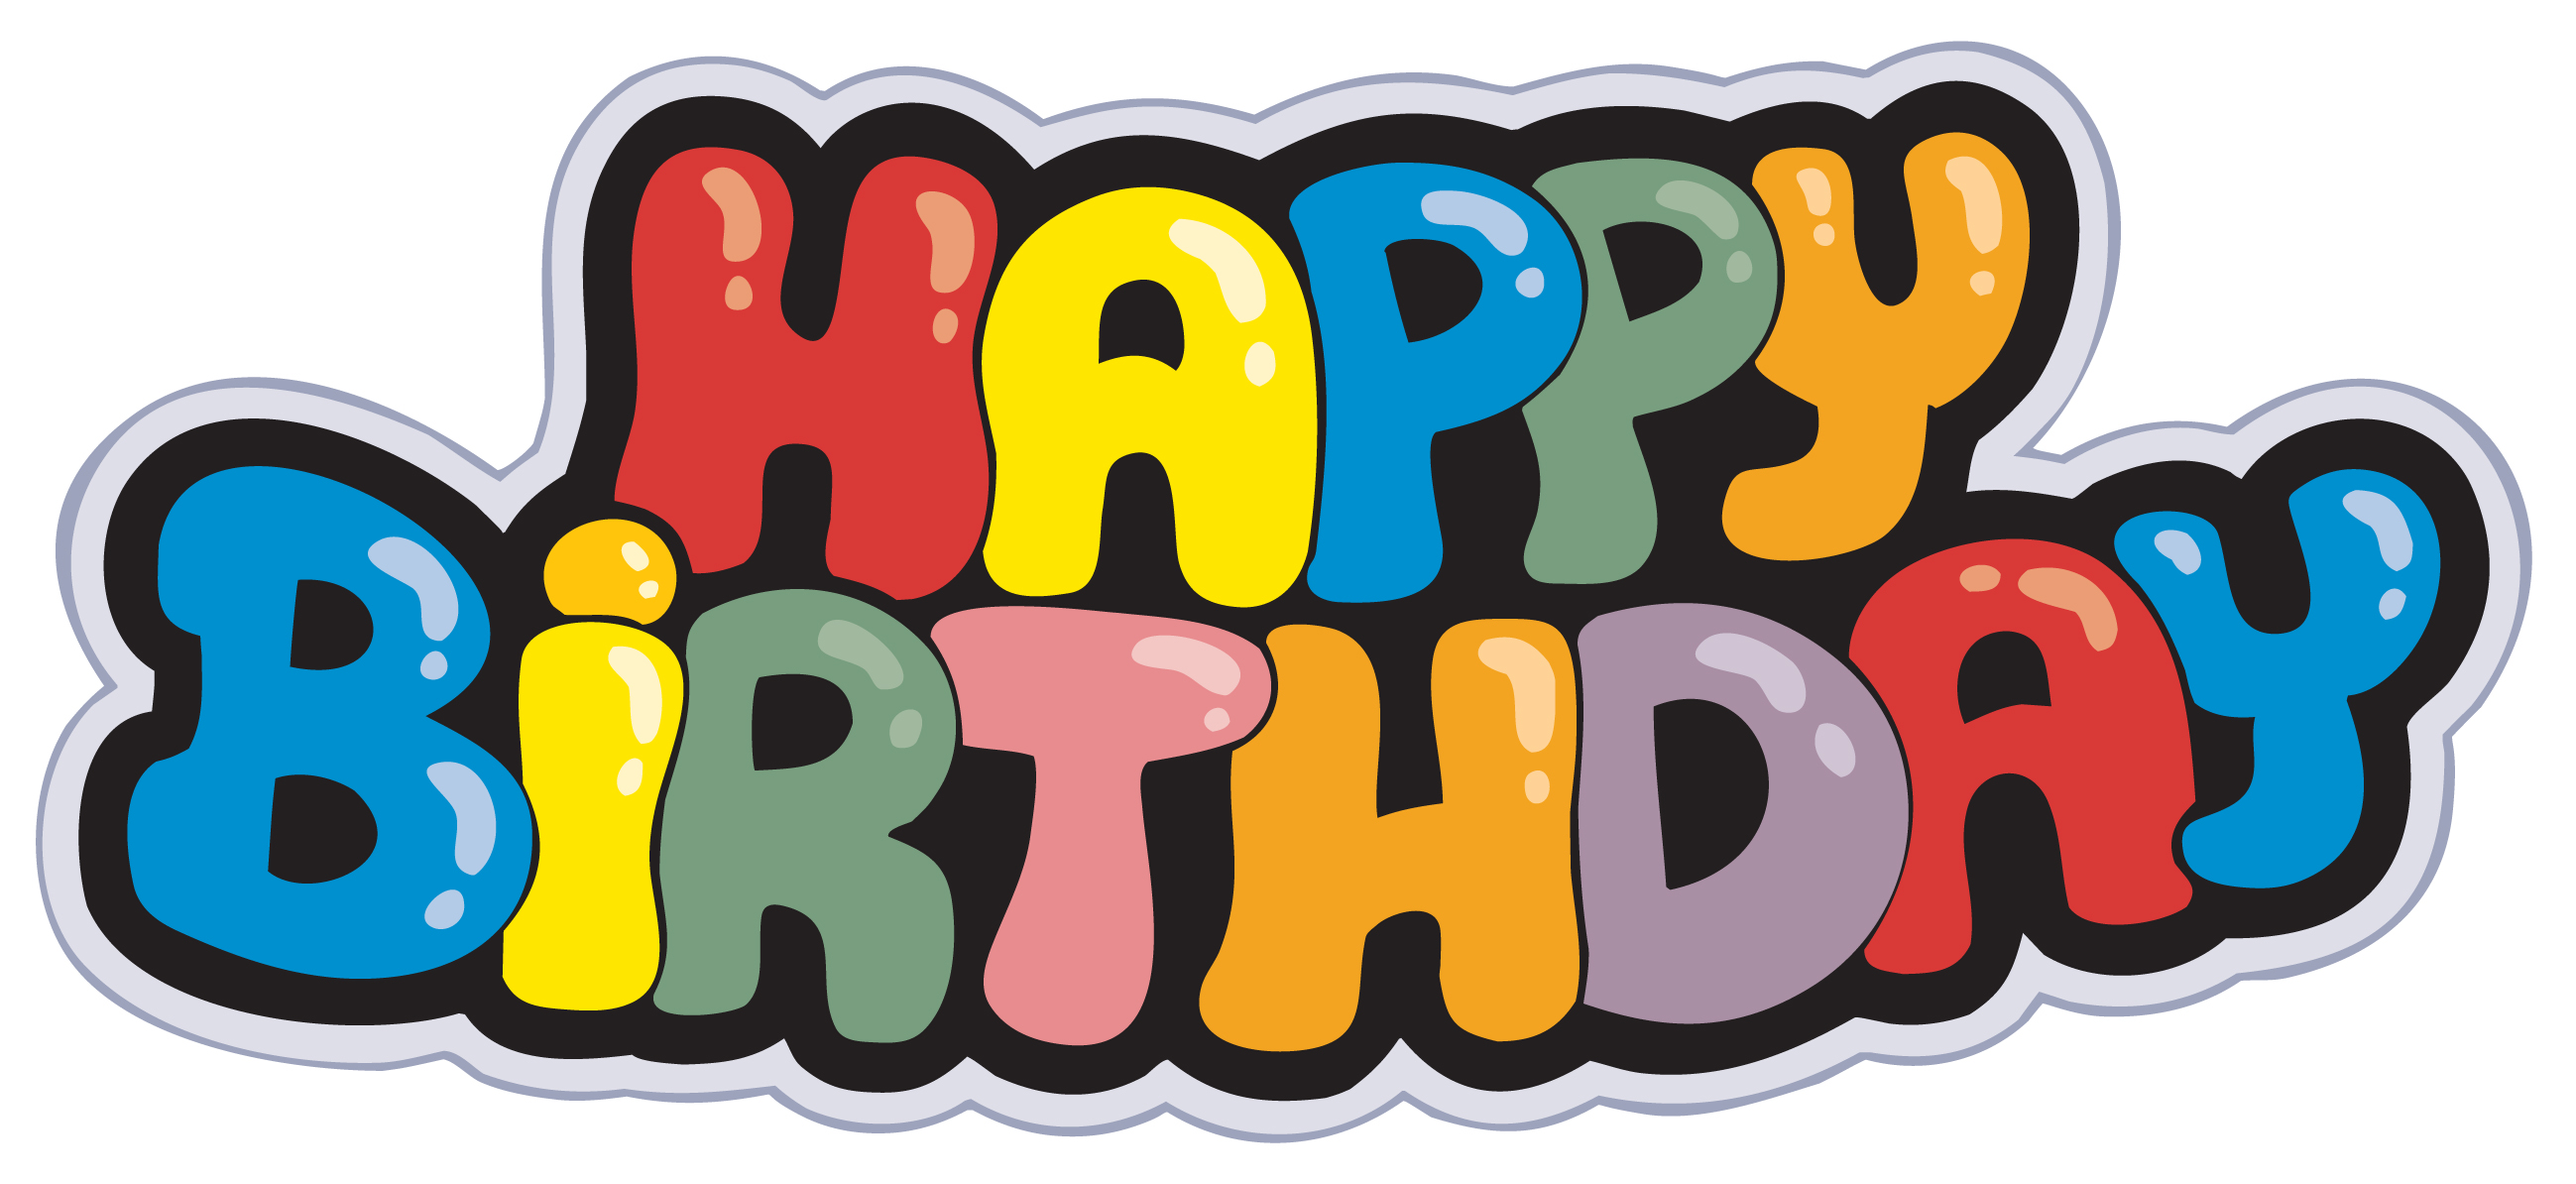 sticker happy birthday free ; free-vector-happy-birthday-elements-06-vector_002758_happy%2520birthday%2520(6)